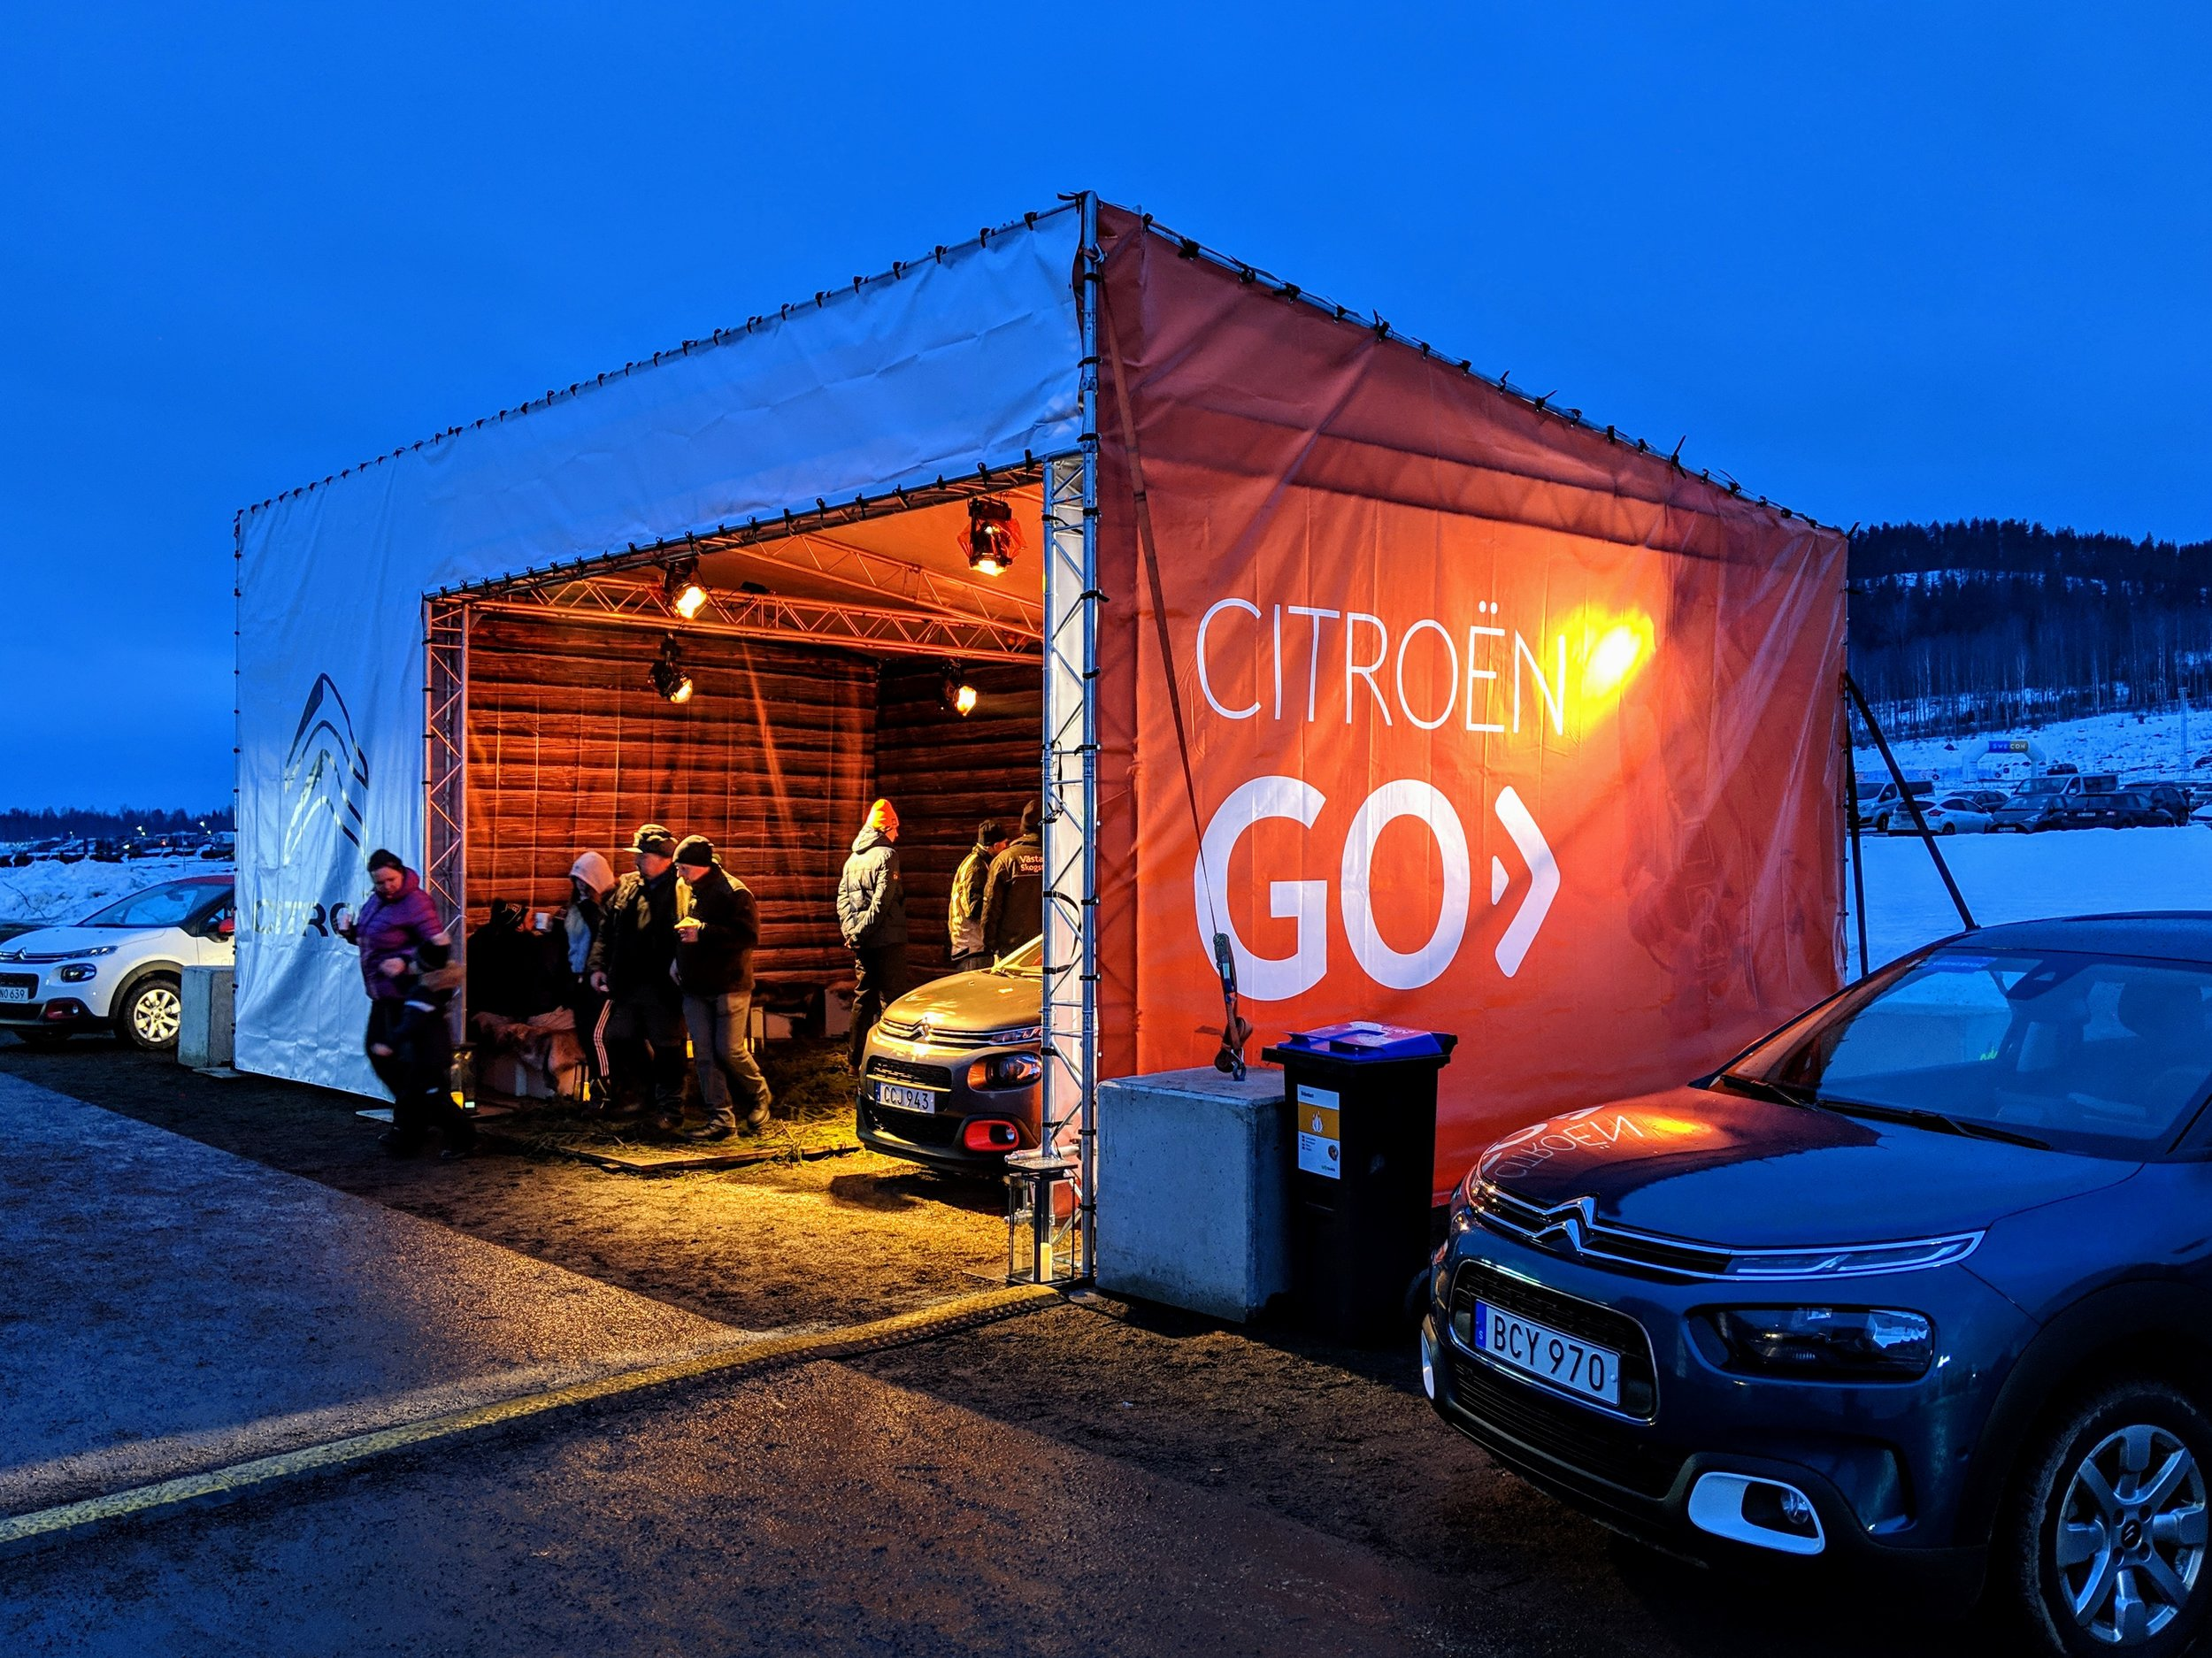 Camp Citroën - Torsby